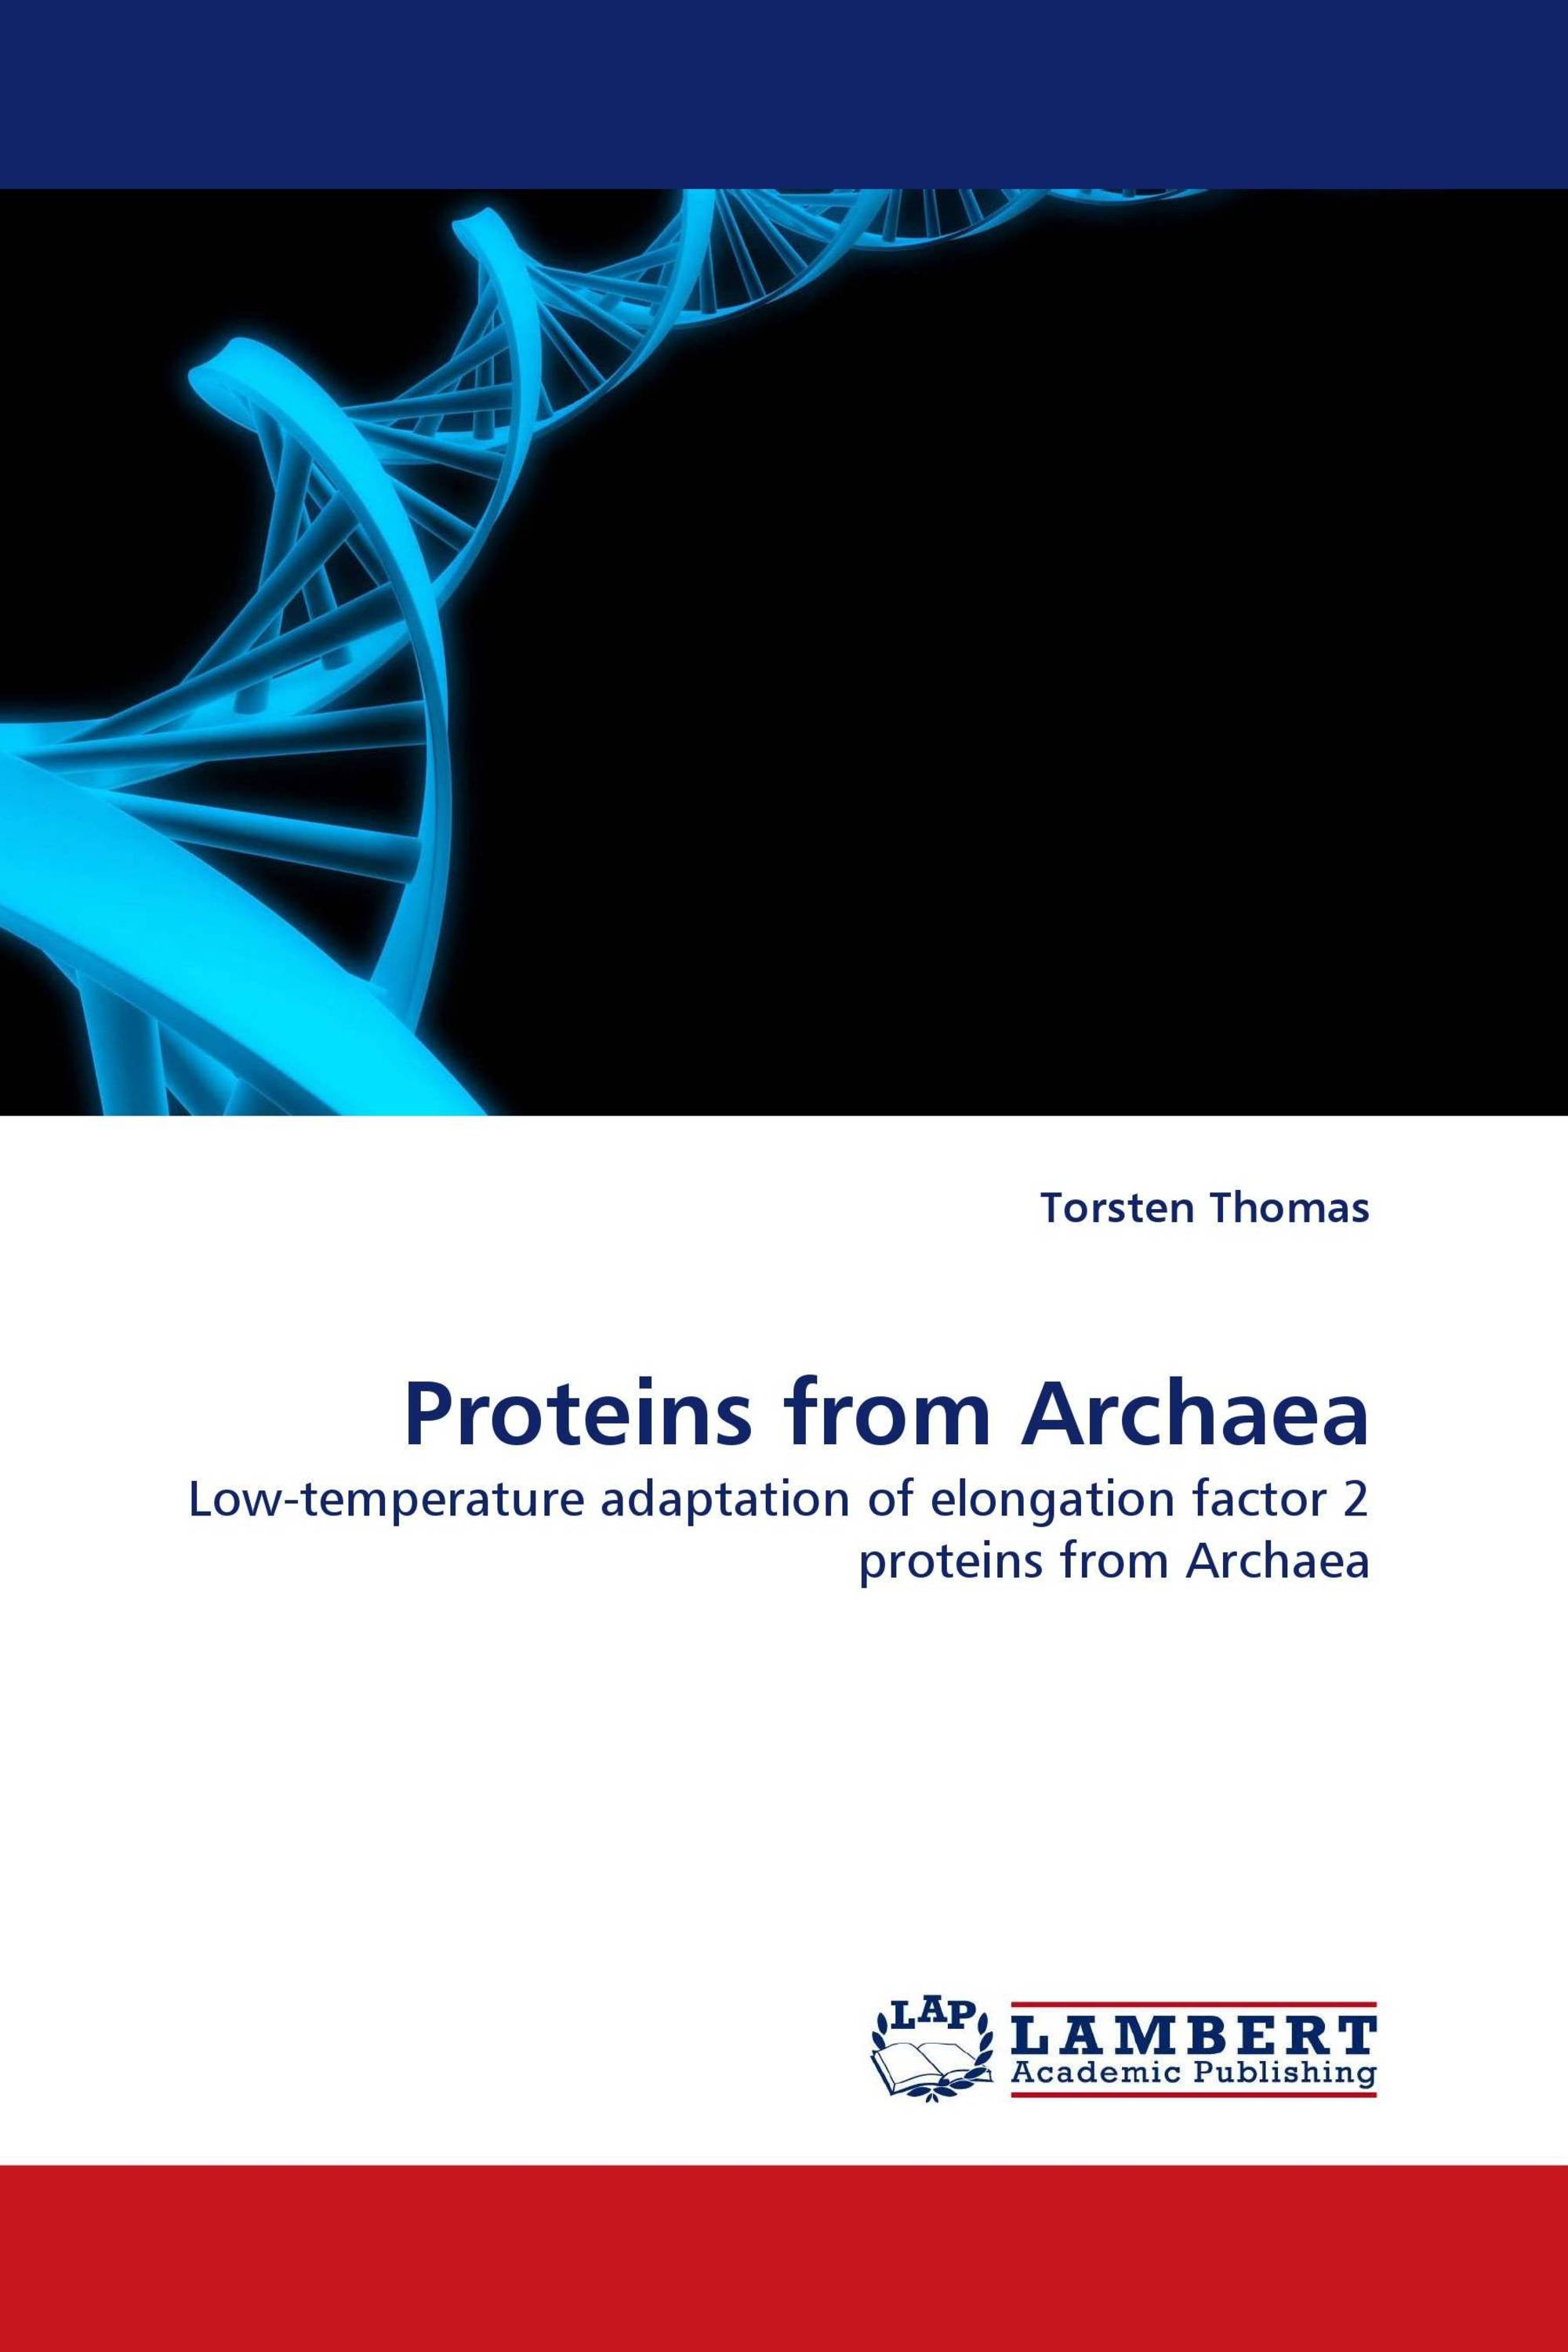 Proteins from Archaea